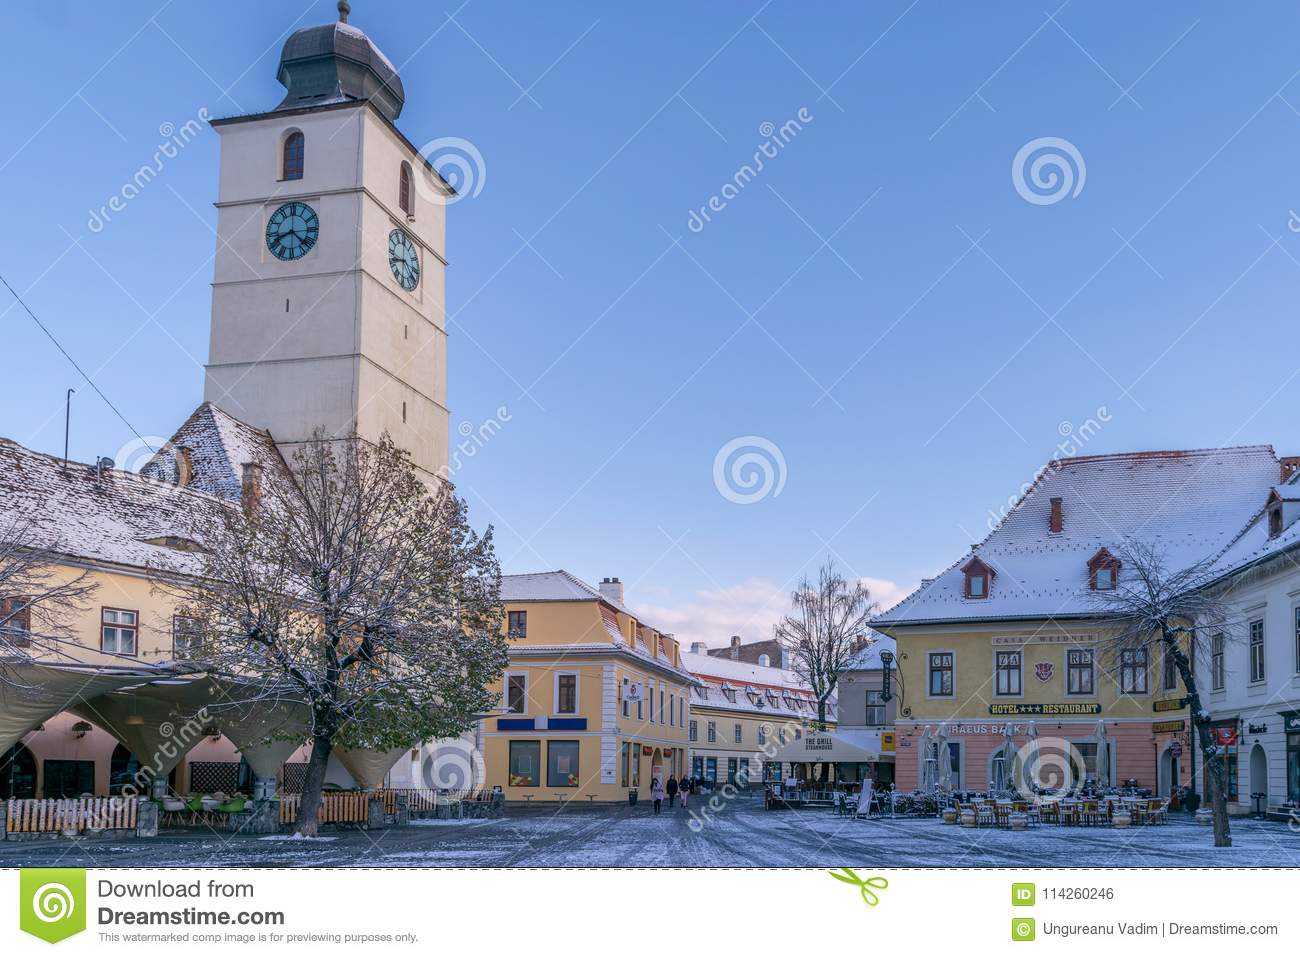 SIBIU, ROMANIA - 31 OCTOBER, 2017: View of thr Big Square and the Council tower